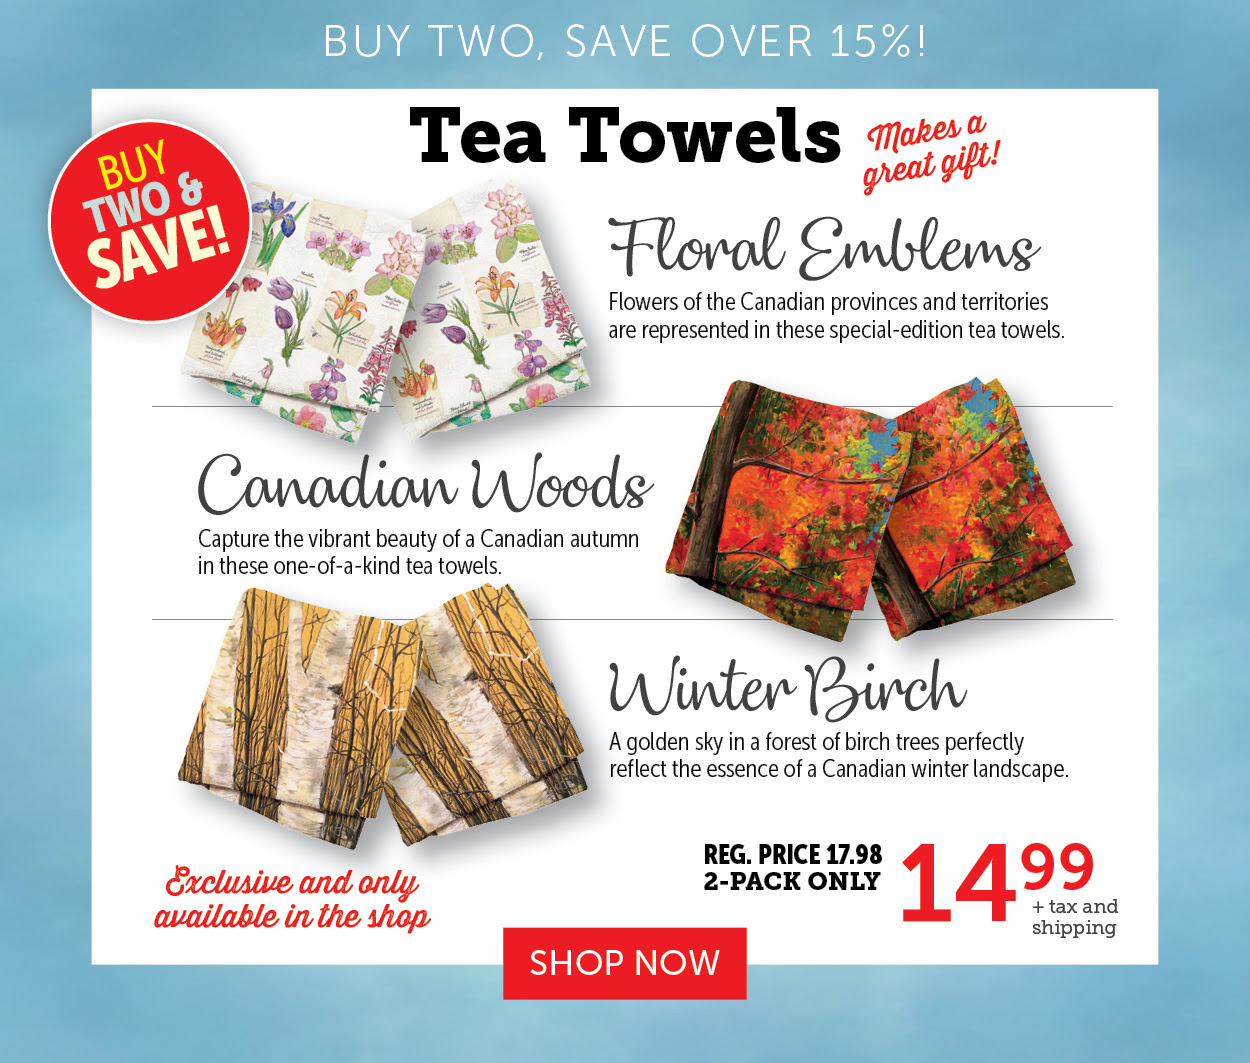 Tea Towels - Buy two - Save over 15%